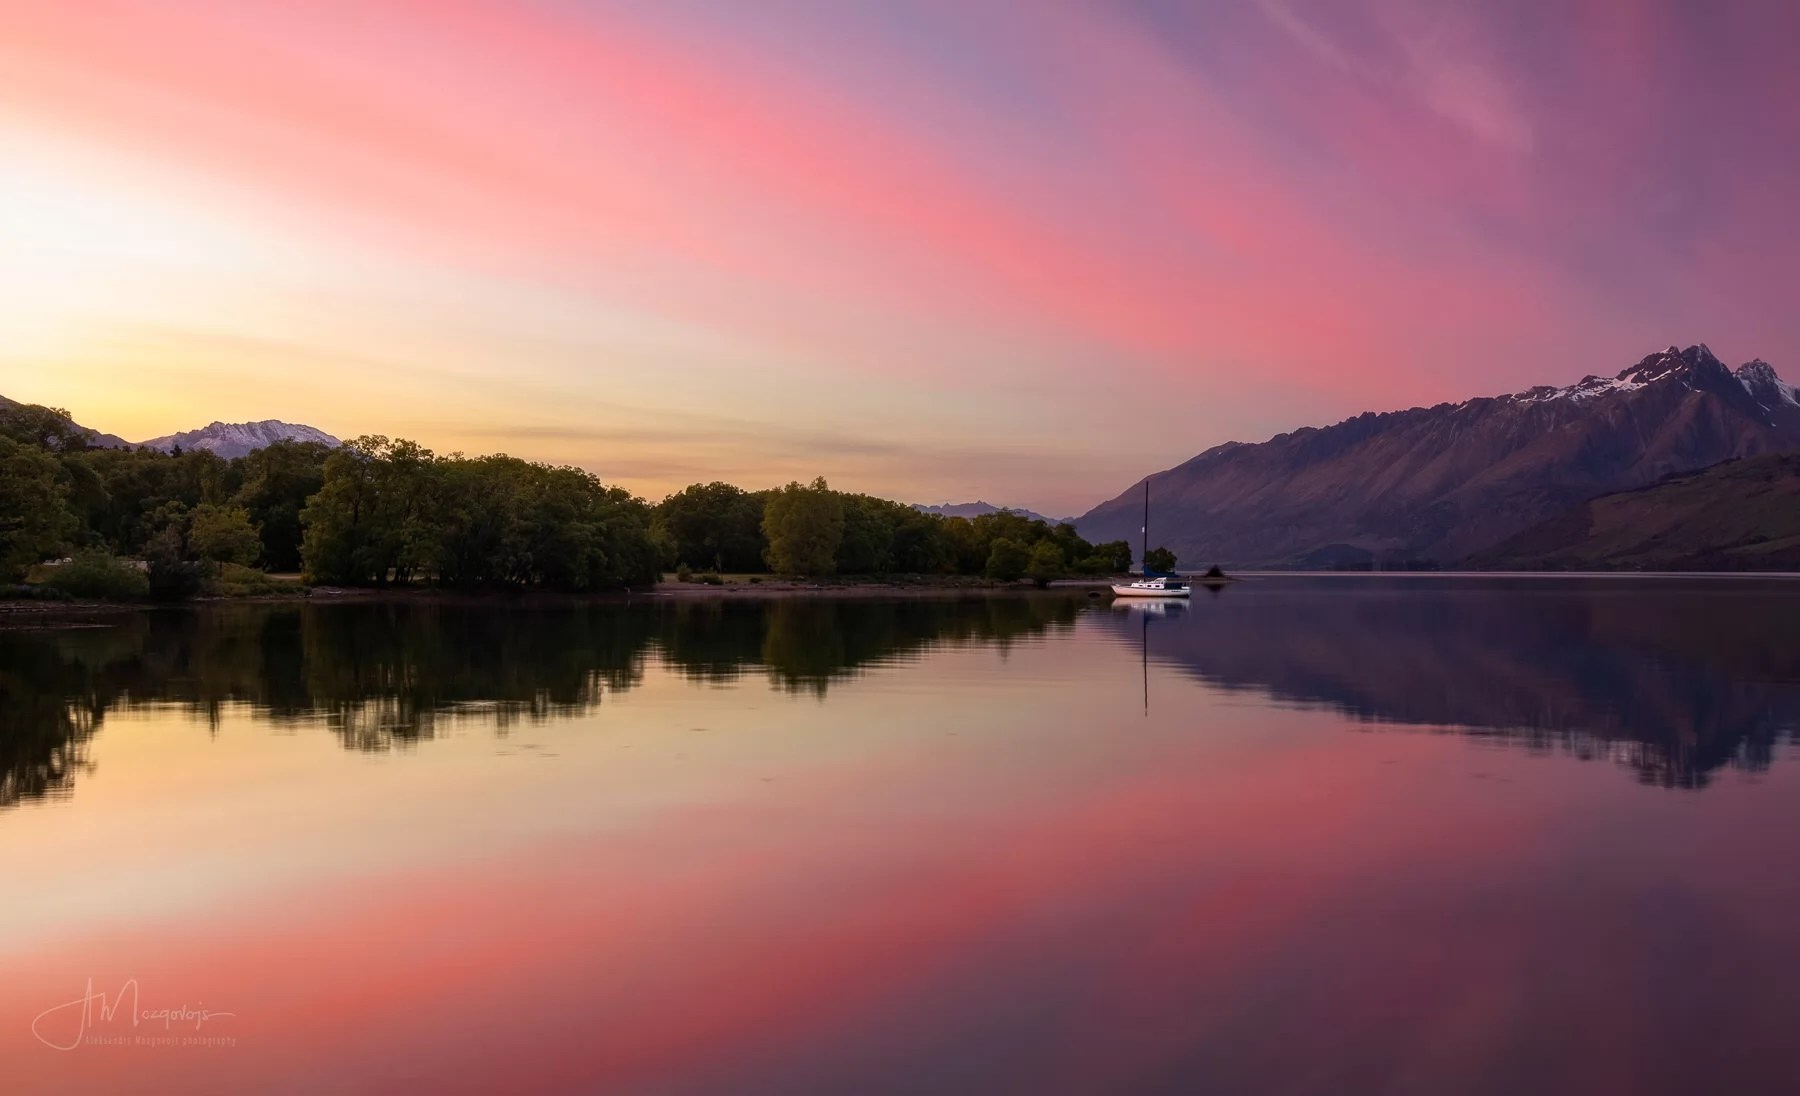 Another image of sunrise in Glenorchy, New Zealand